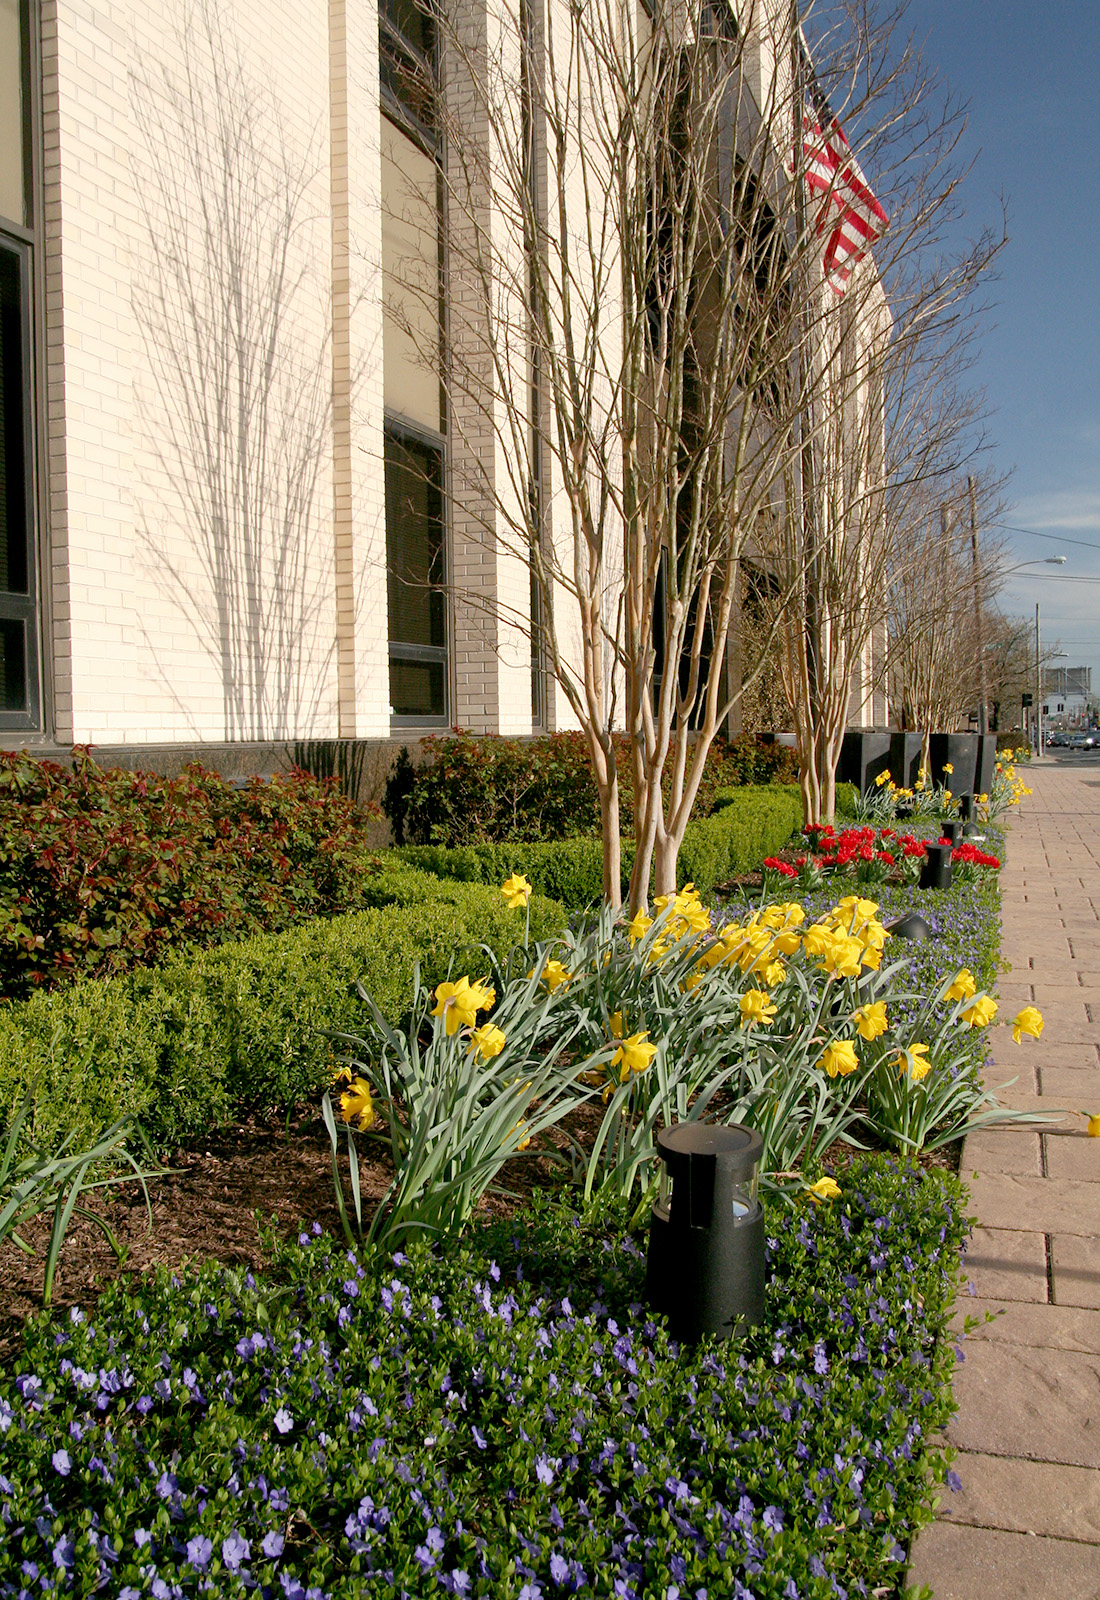 Spring planting a a commercial location.